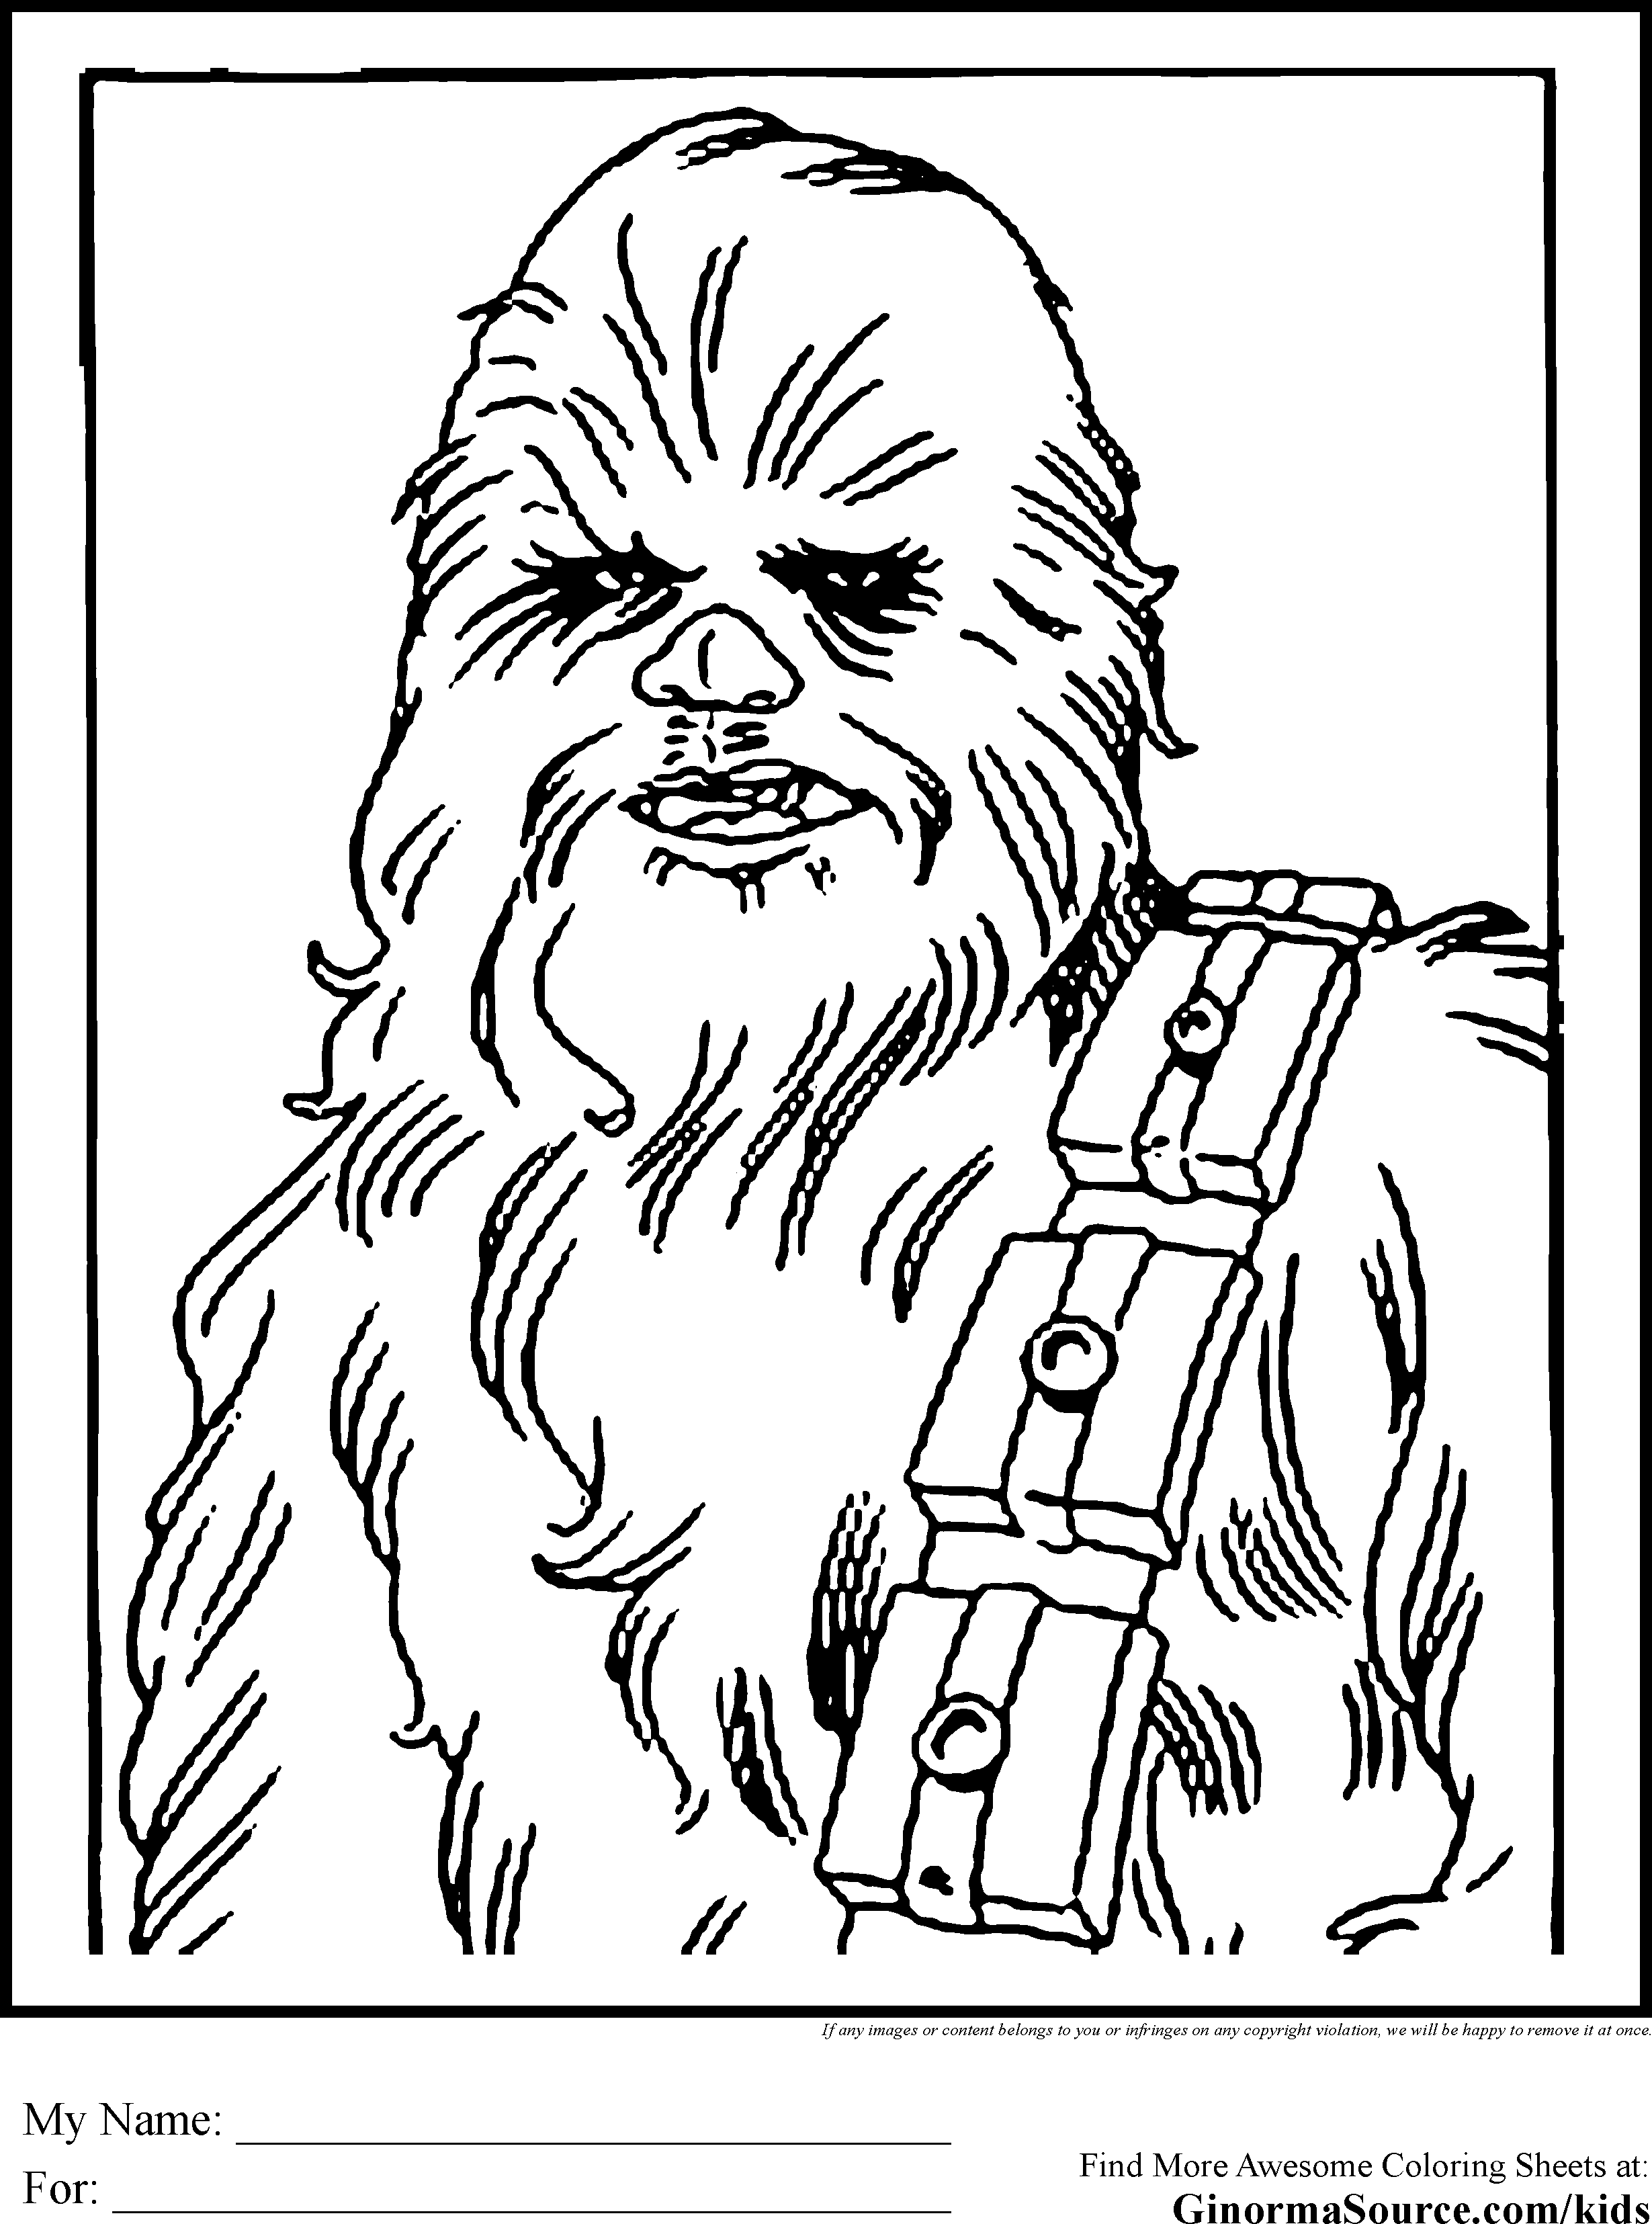 Parade coloring pages to print for adults - Star Wars Colouring Pages Chewbacca Wookie Anakin S Sidekick That Lovable Furry Alien That Everyone Loves